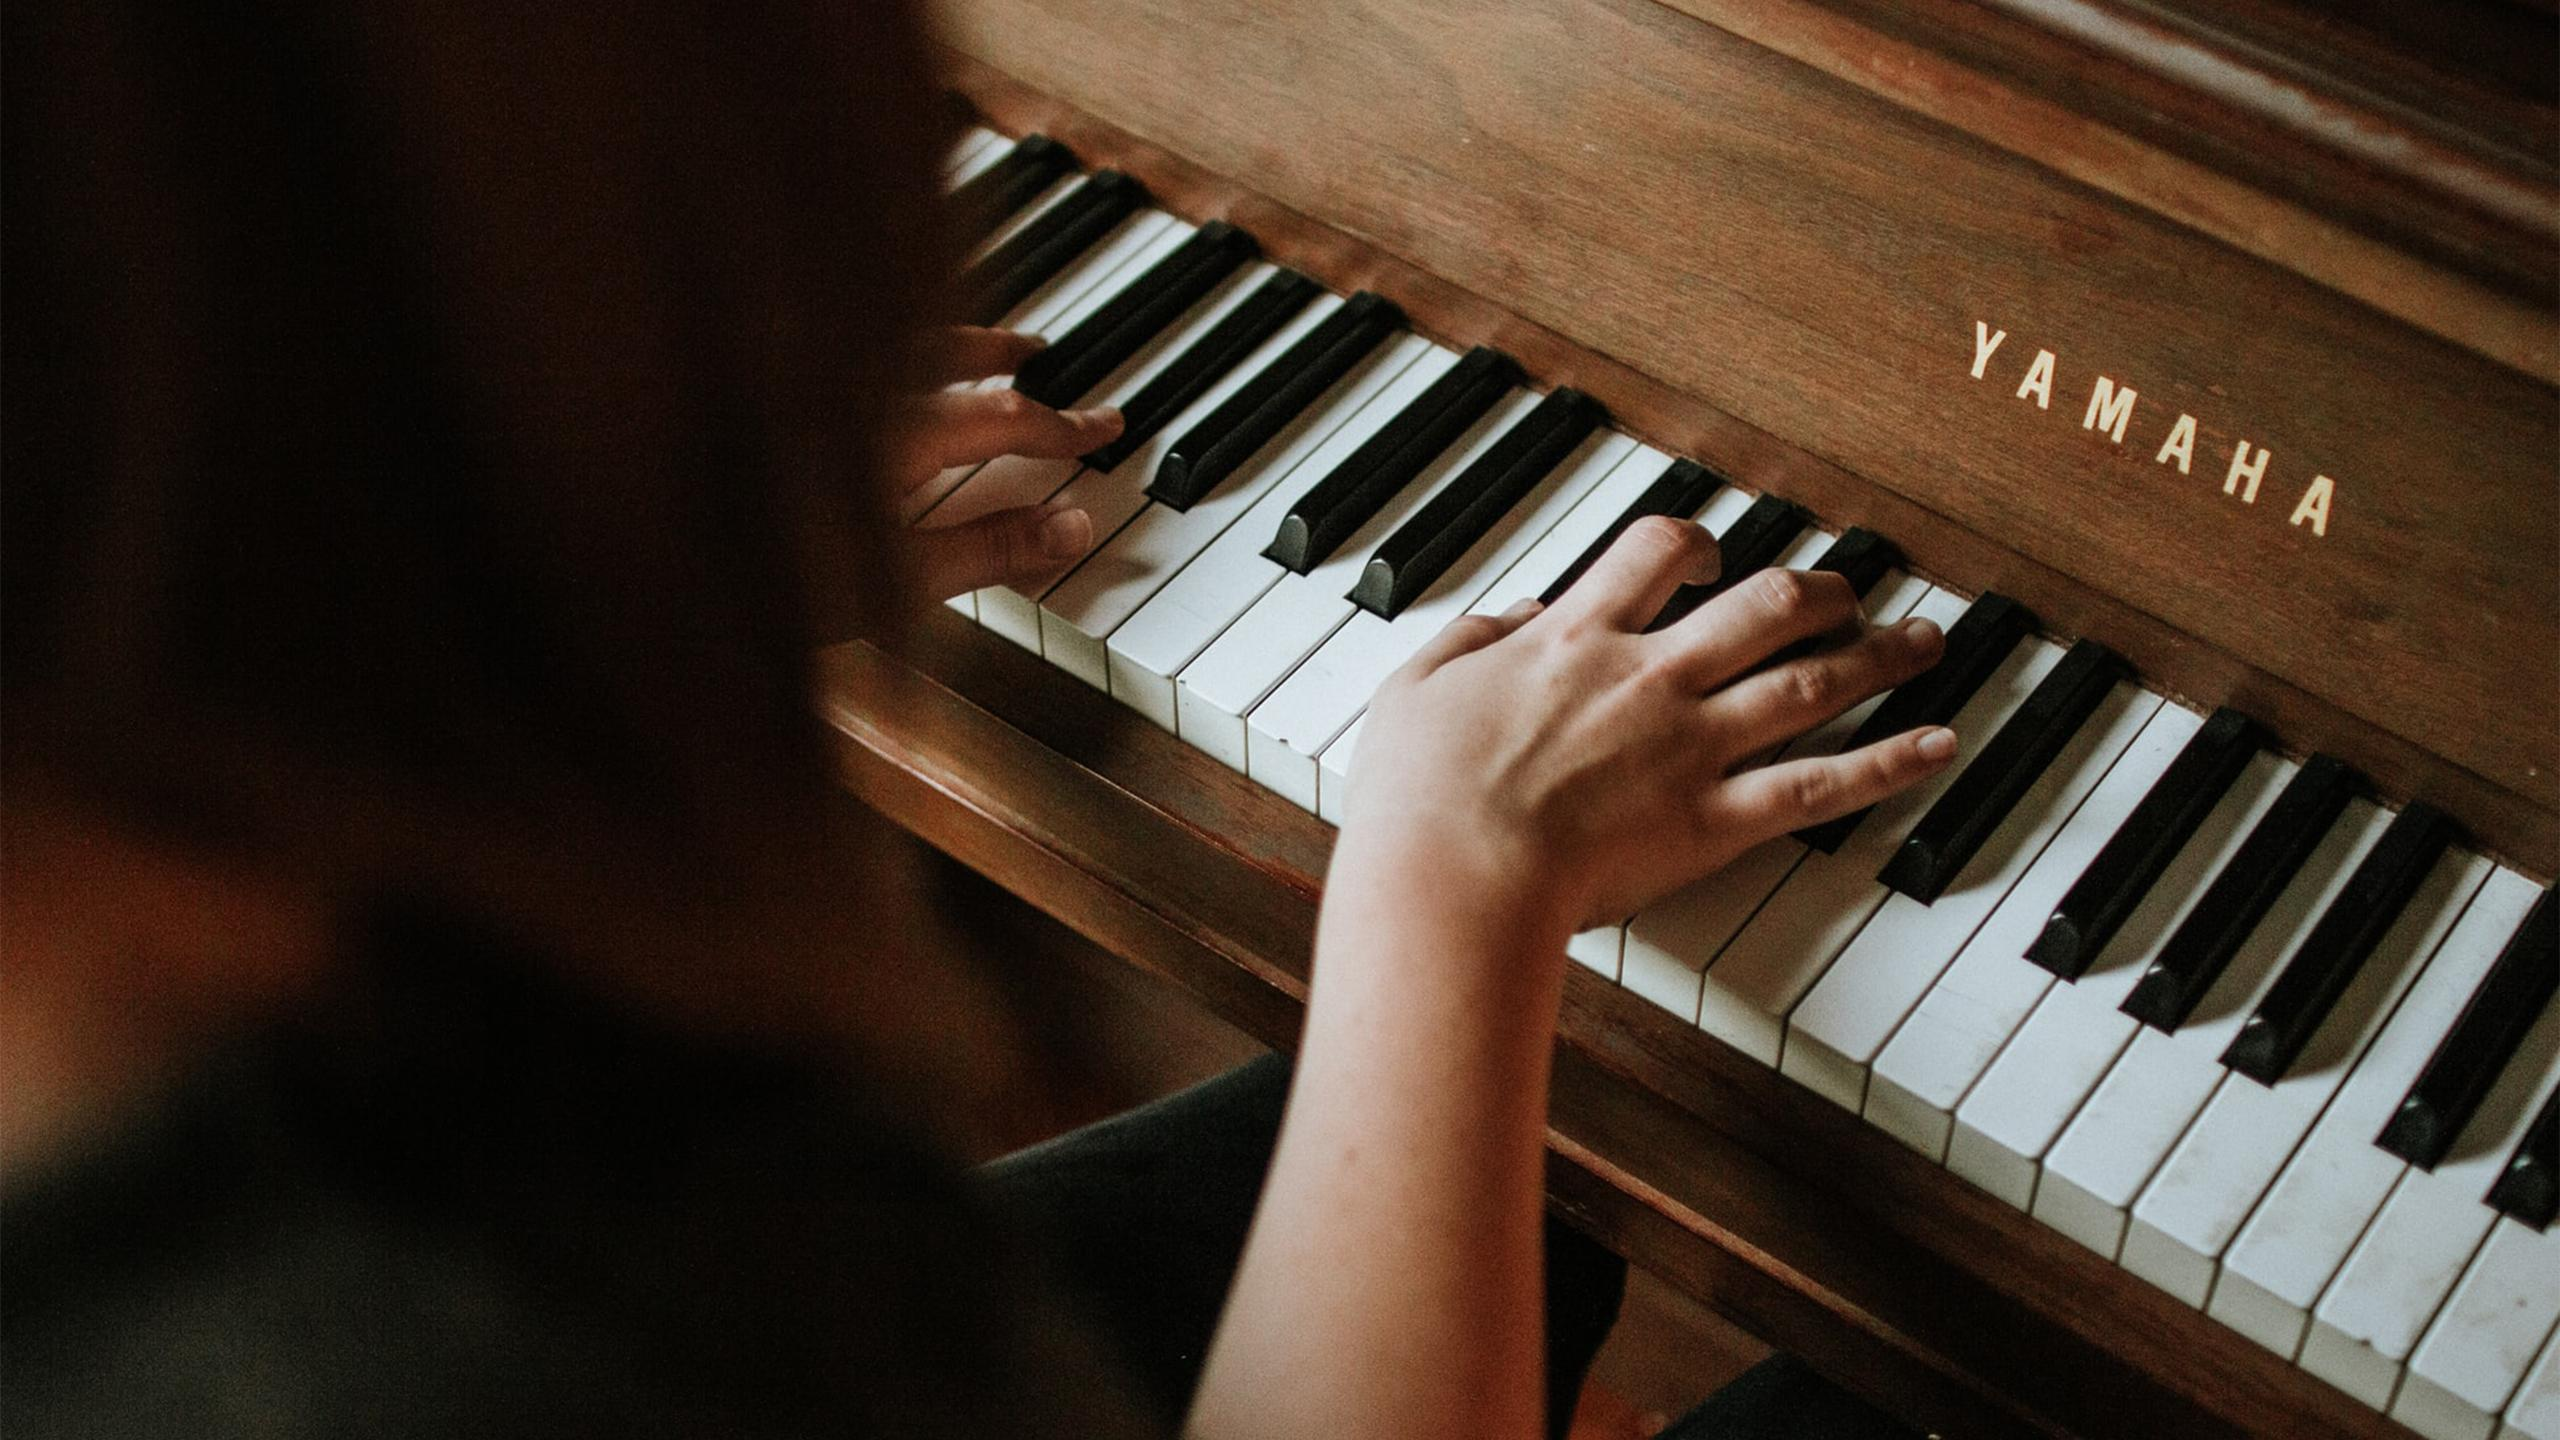 A person playing piano.